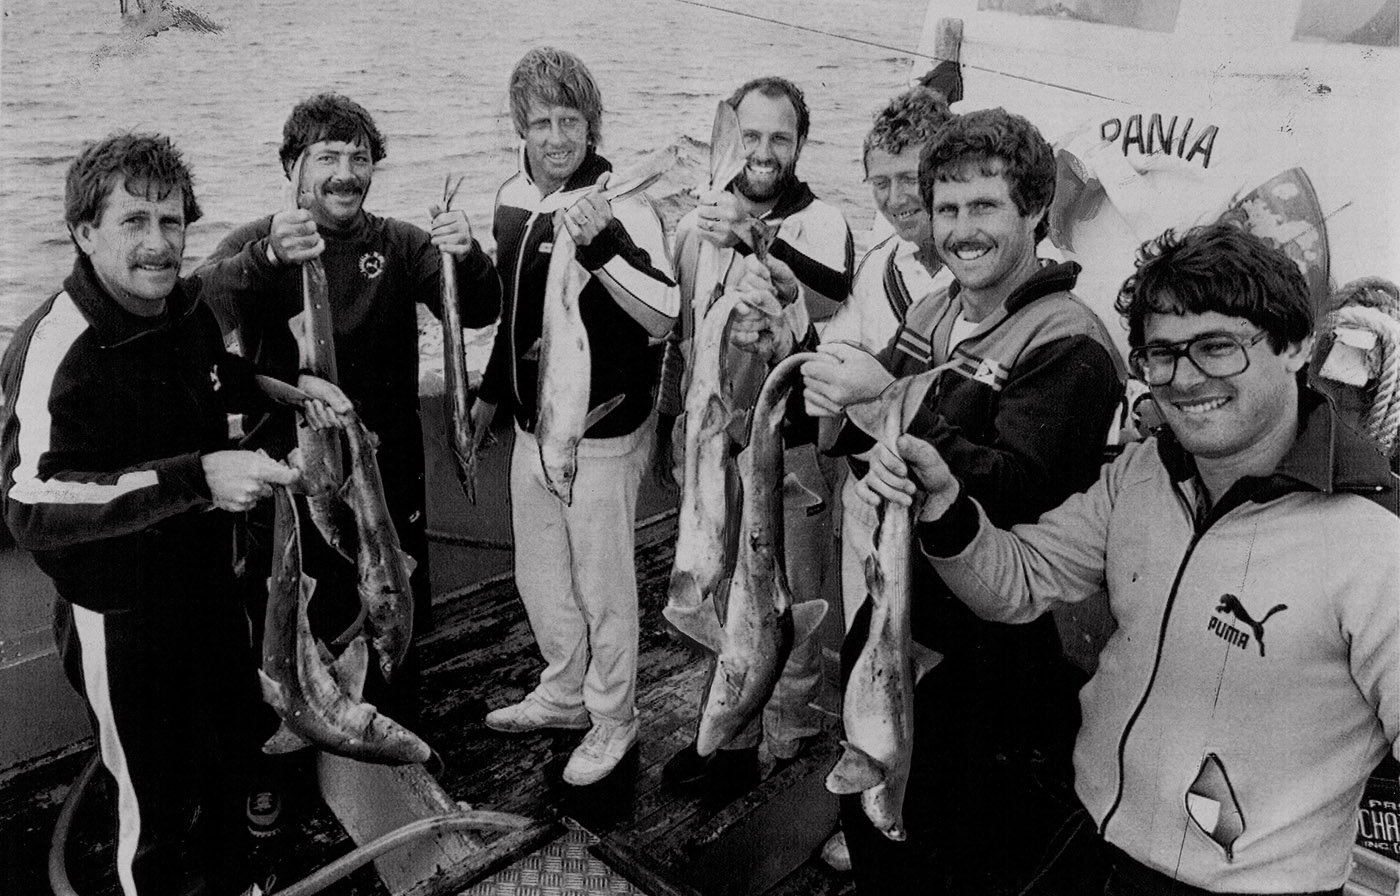 From left: Laird, Marsh, Jeff Thomson, Ray Bright, Kim Hughes and Graeme Wood along with the team masseur at Cape Saunders, New Zealand, 1982